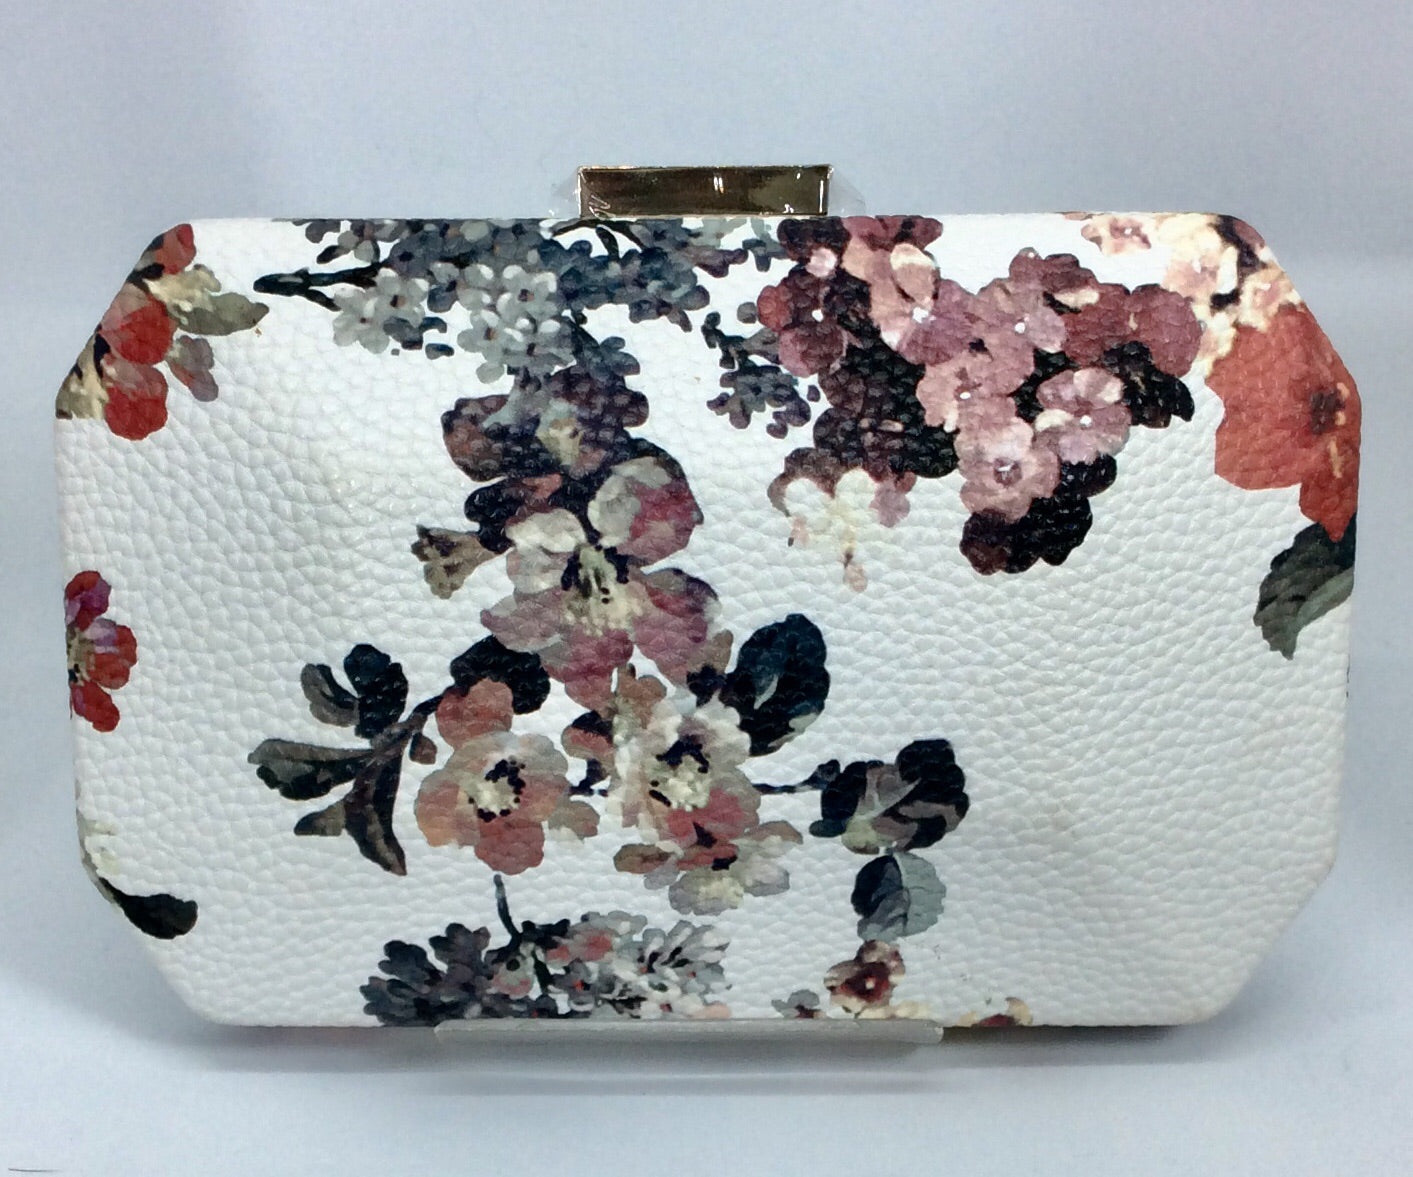 Flower patterned cream and pink clutch